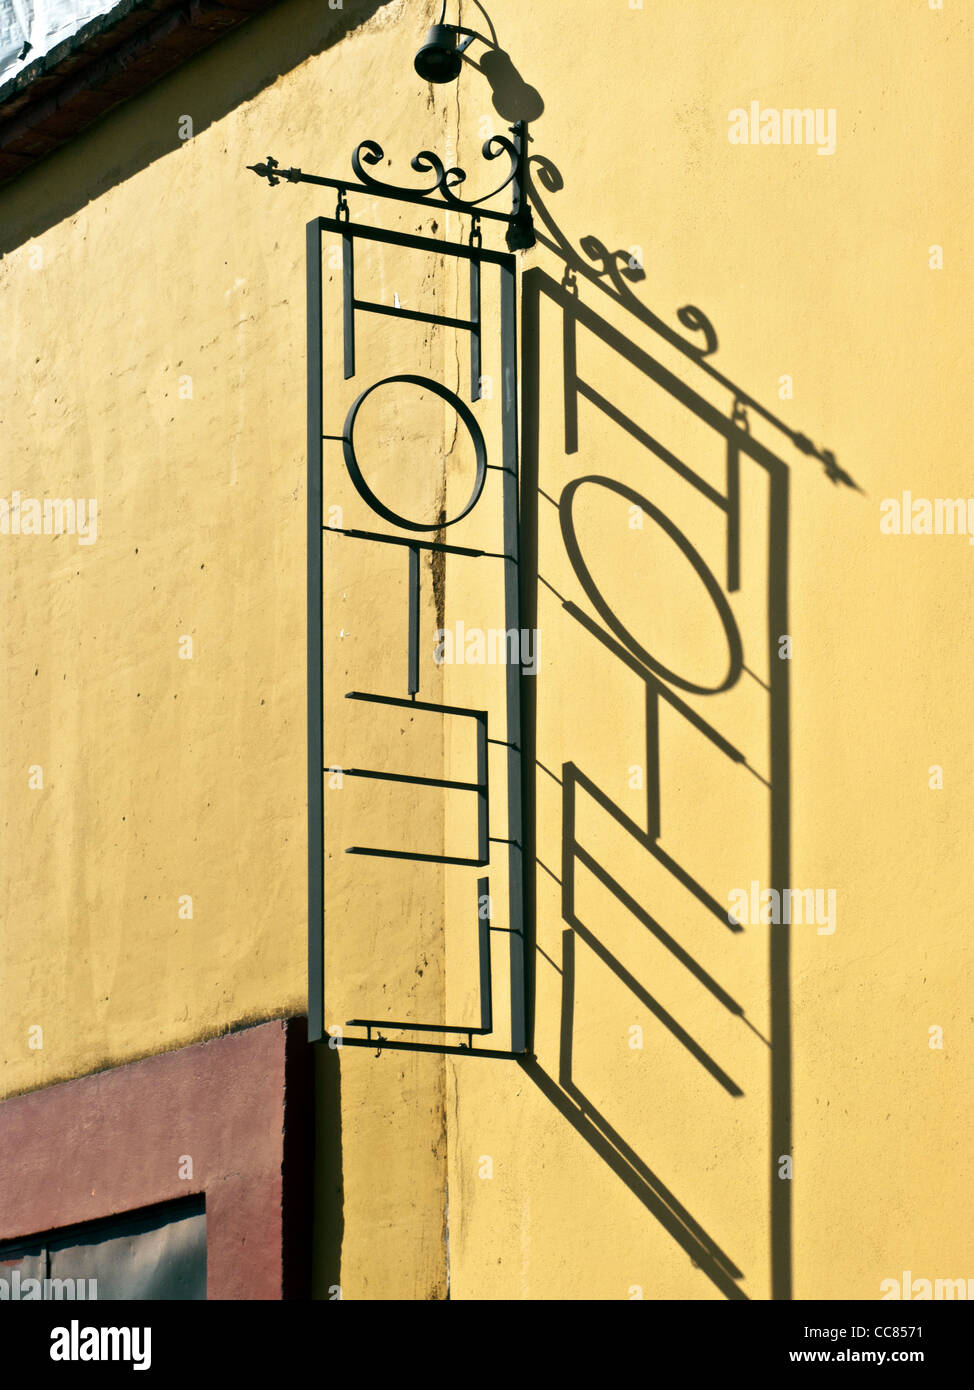 reverse read becomes right read in shadow cast by ornamental metal openwork hotel sign on ochre plaster wall Oaxaca - Stock Image